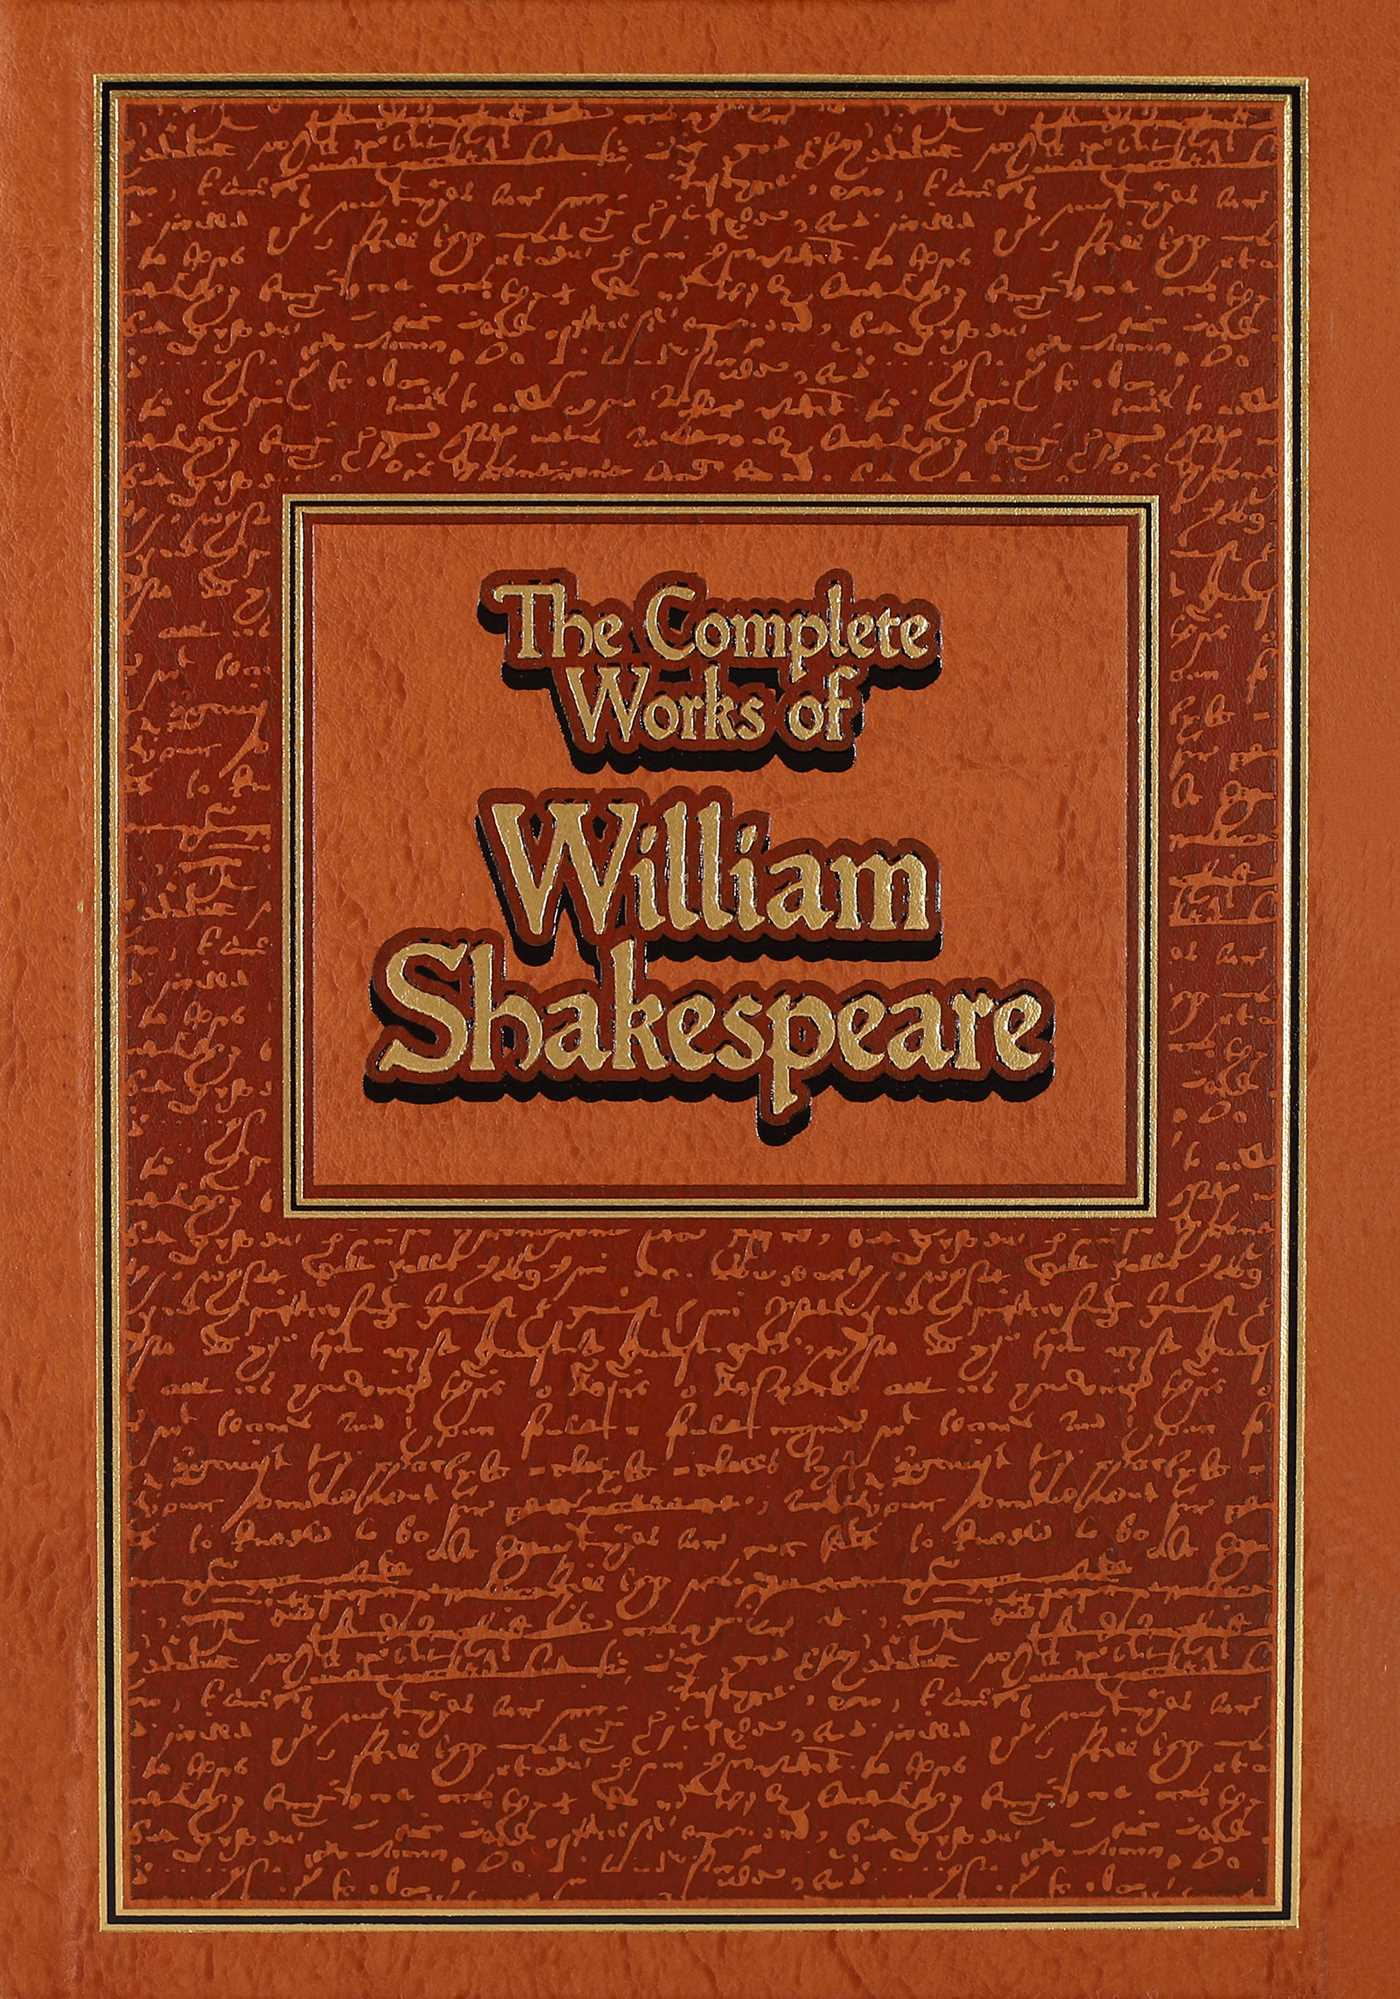 The complete works of william shakespeare 9781626860988 hr